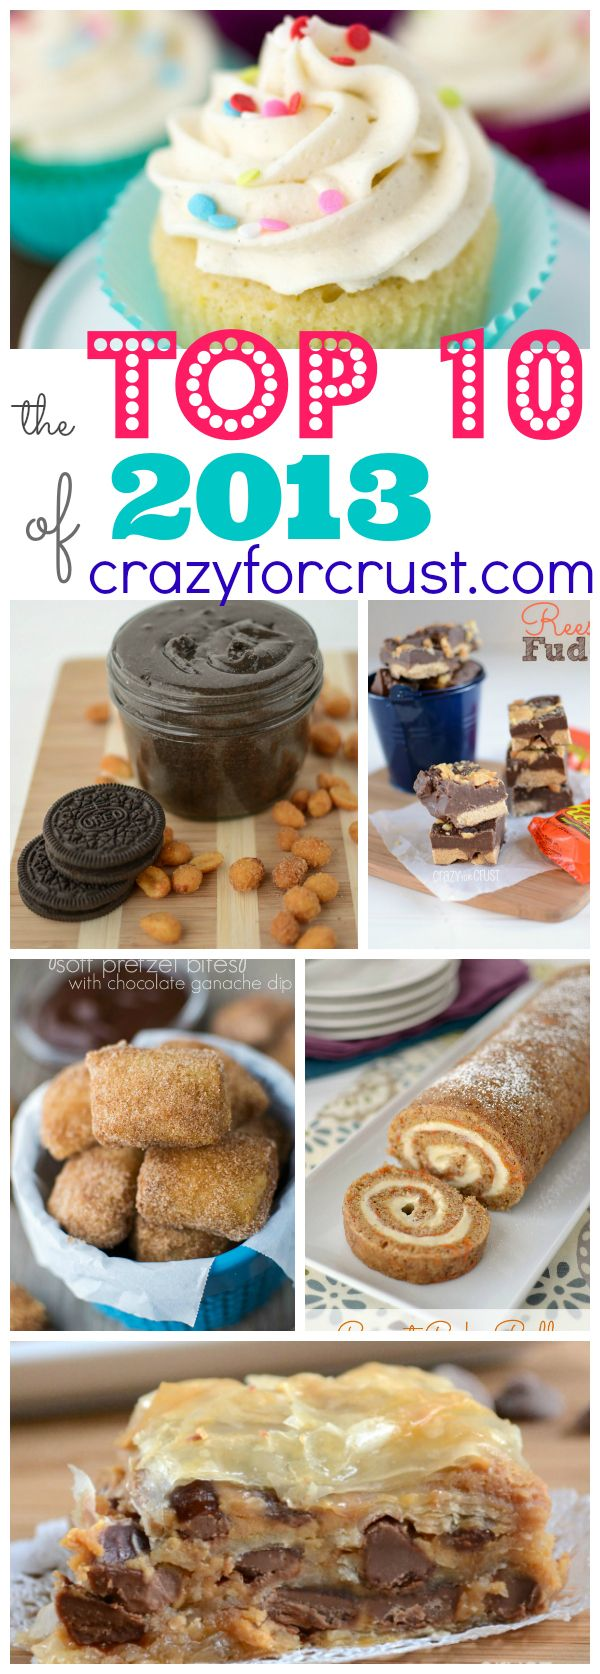 Top 10 Viewed Recipes 2013